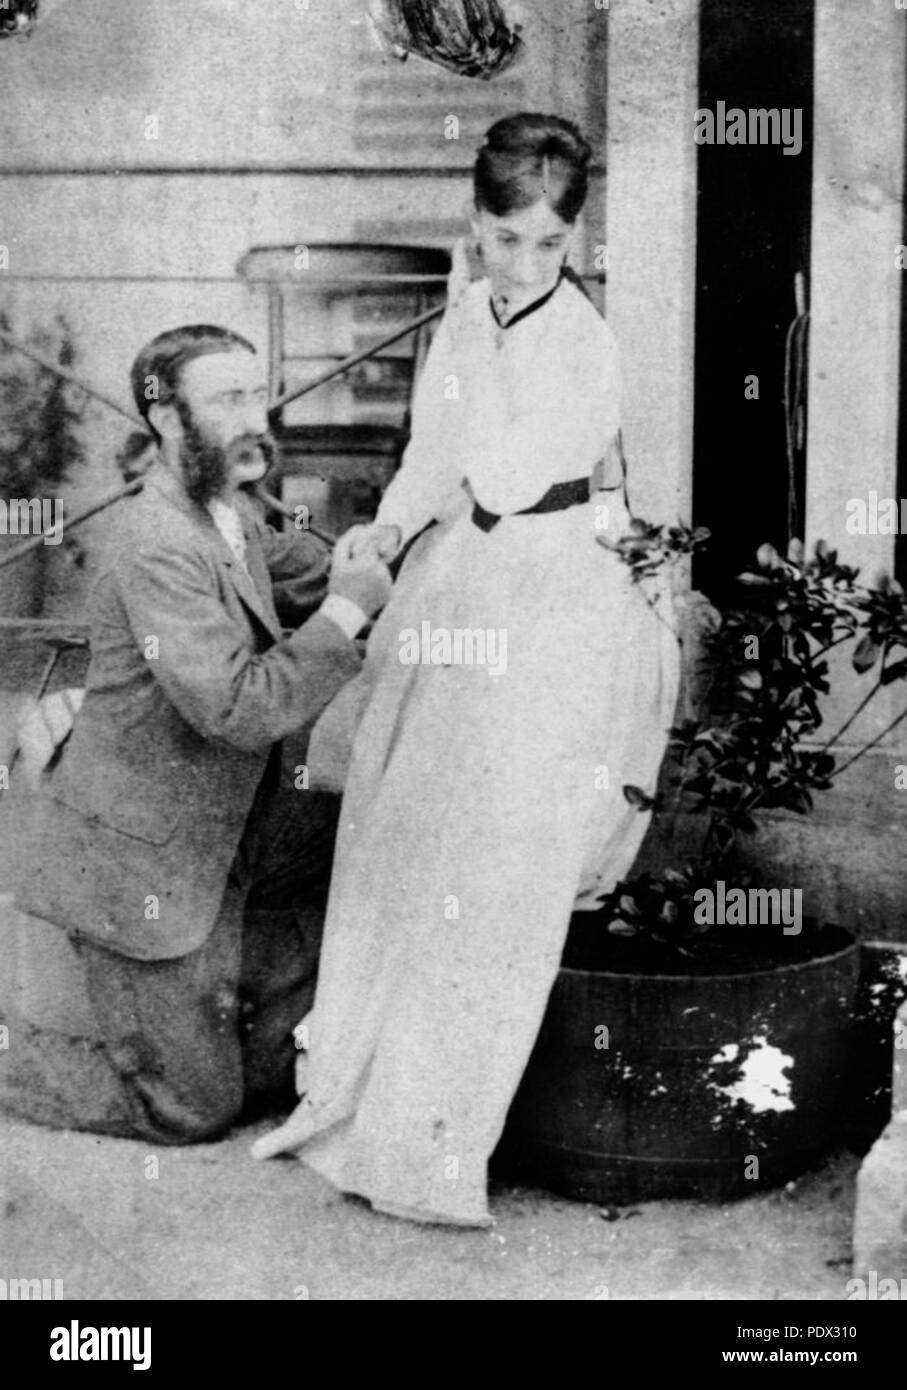 245 StateLibQld 1 186167 Captain Walter and Mrs Creagh in 1868 - Stock Image